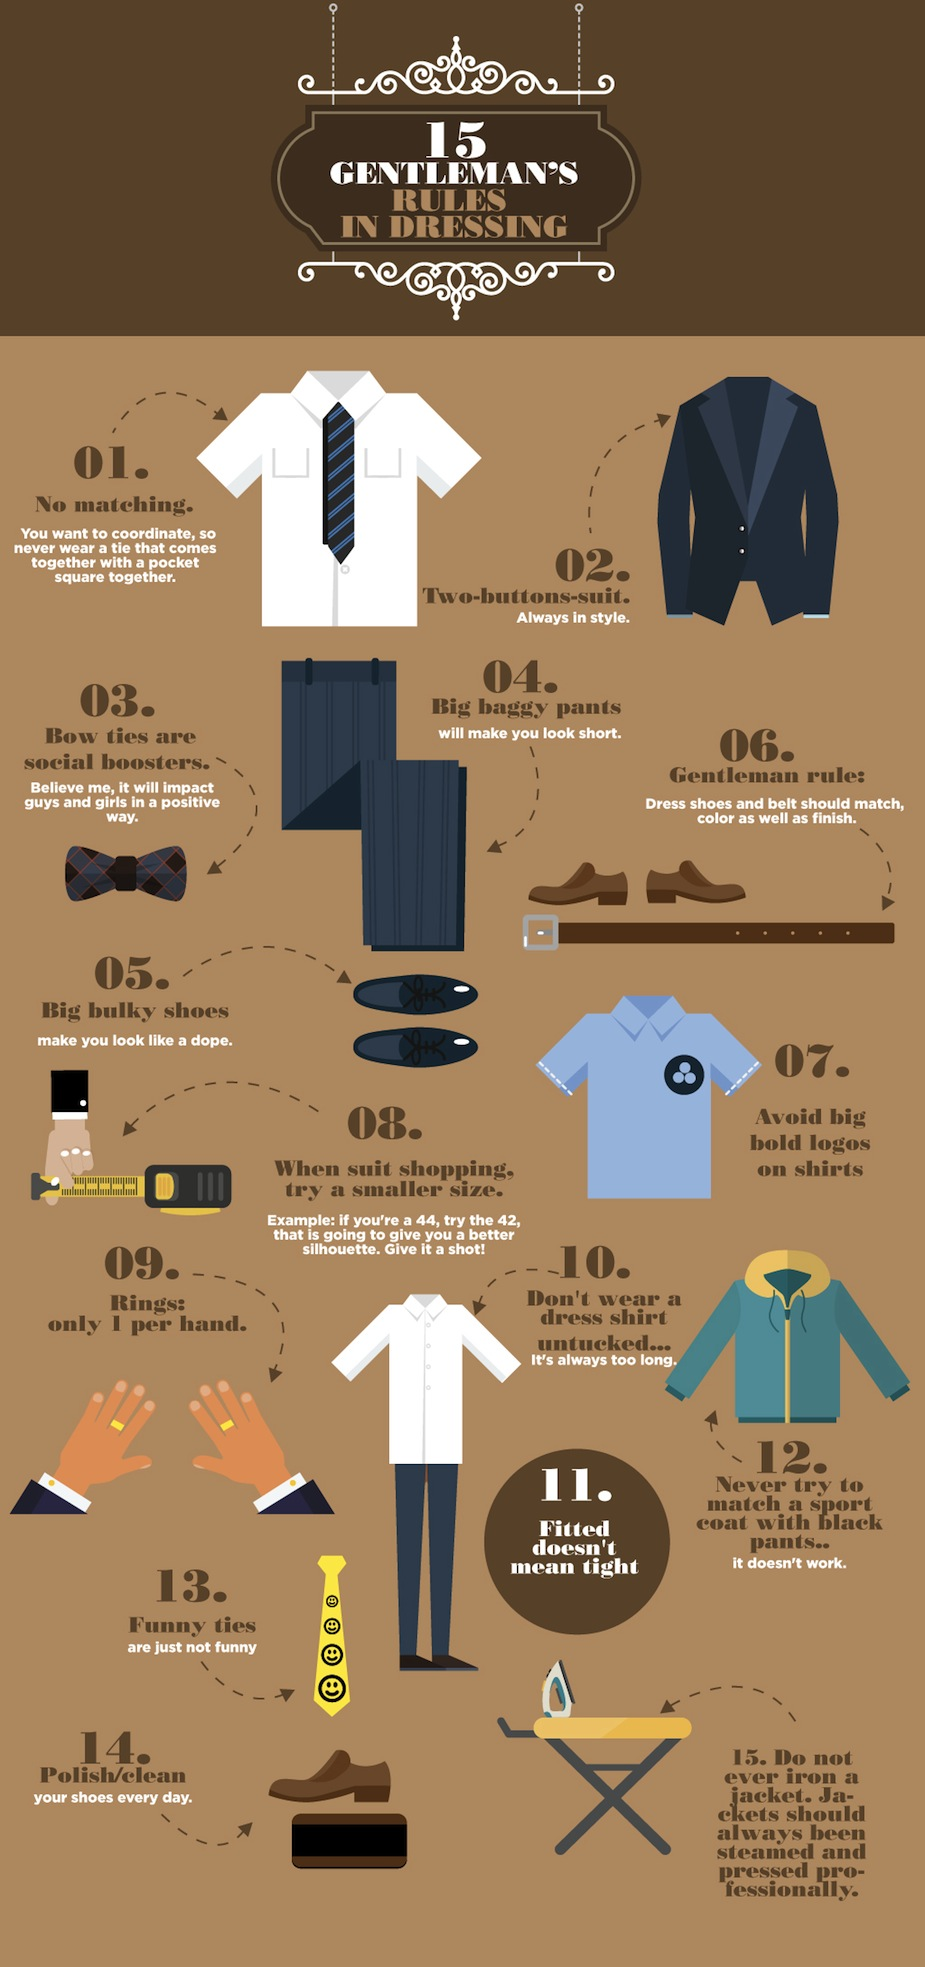 15-gentlemans-rules-in-dressing